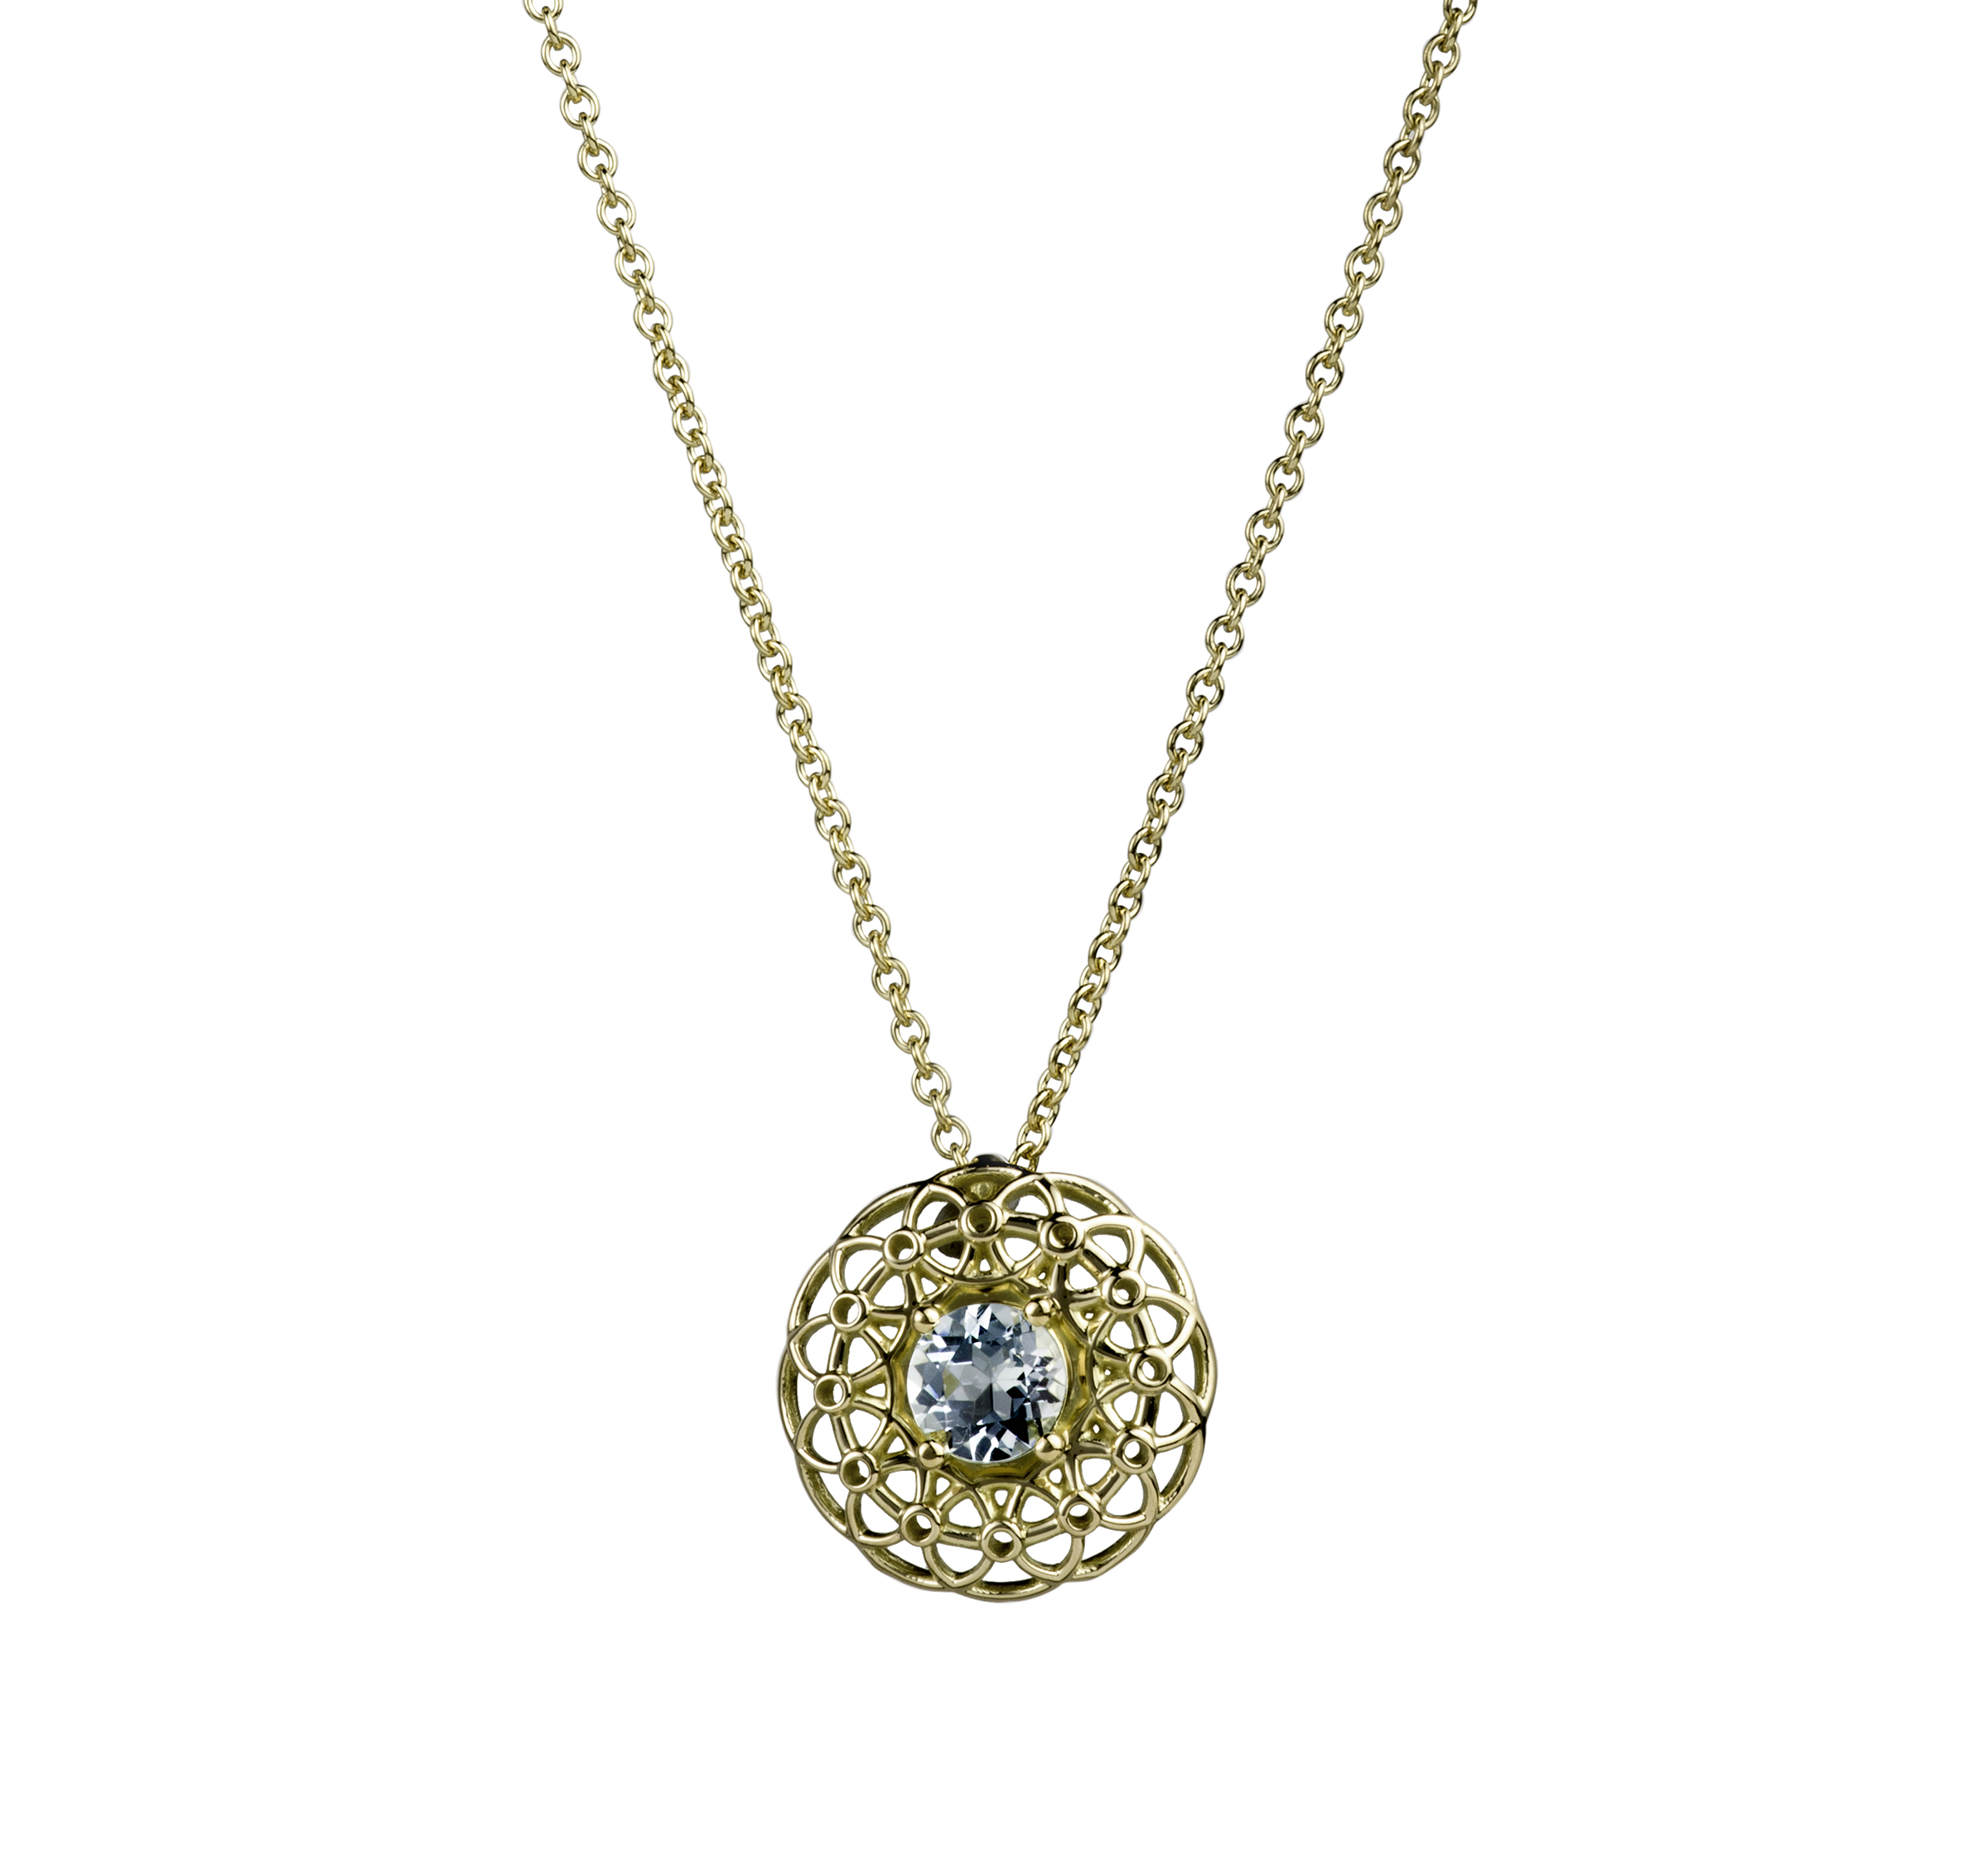 jewelry on white, close ups for web and print photography by OSP in Scotch Plains, NJ.